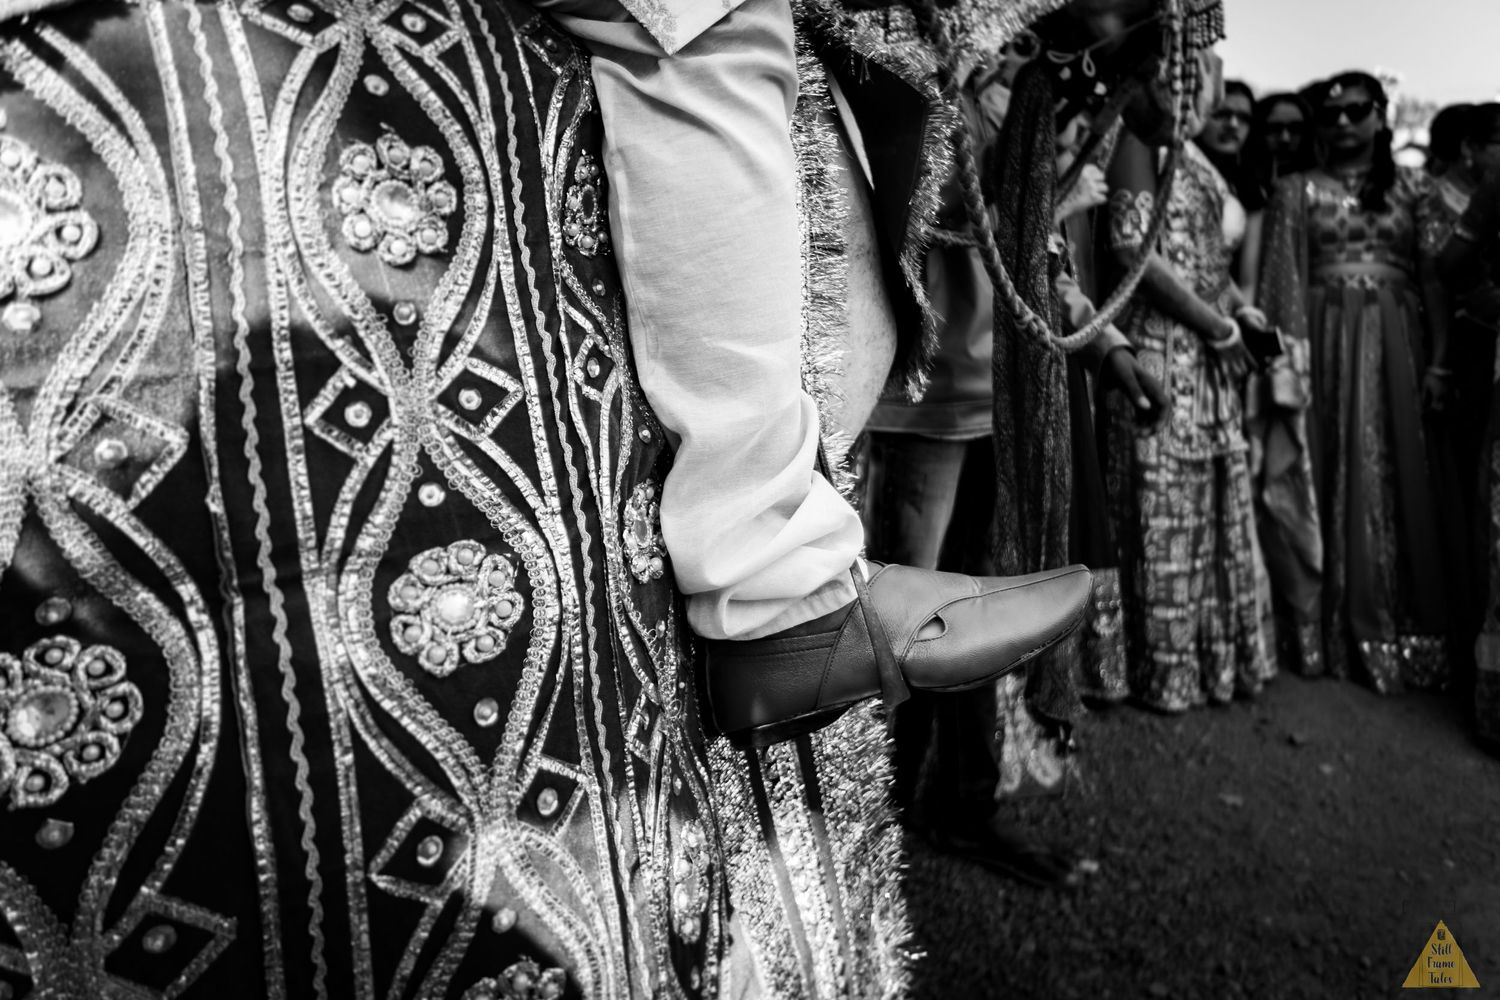 Groom's foot details while riding a horse at a wedding day barat